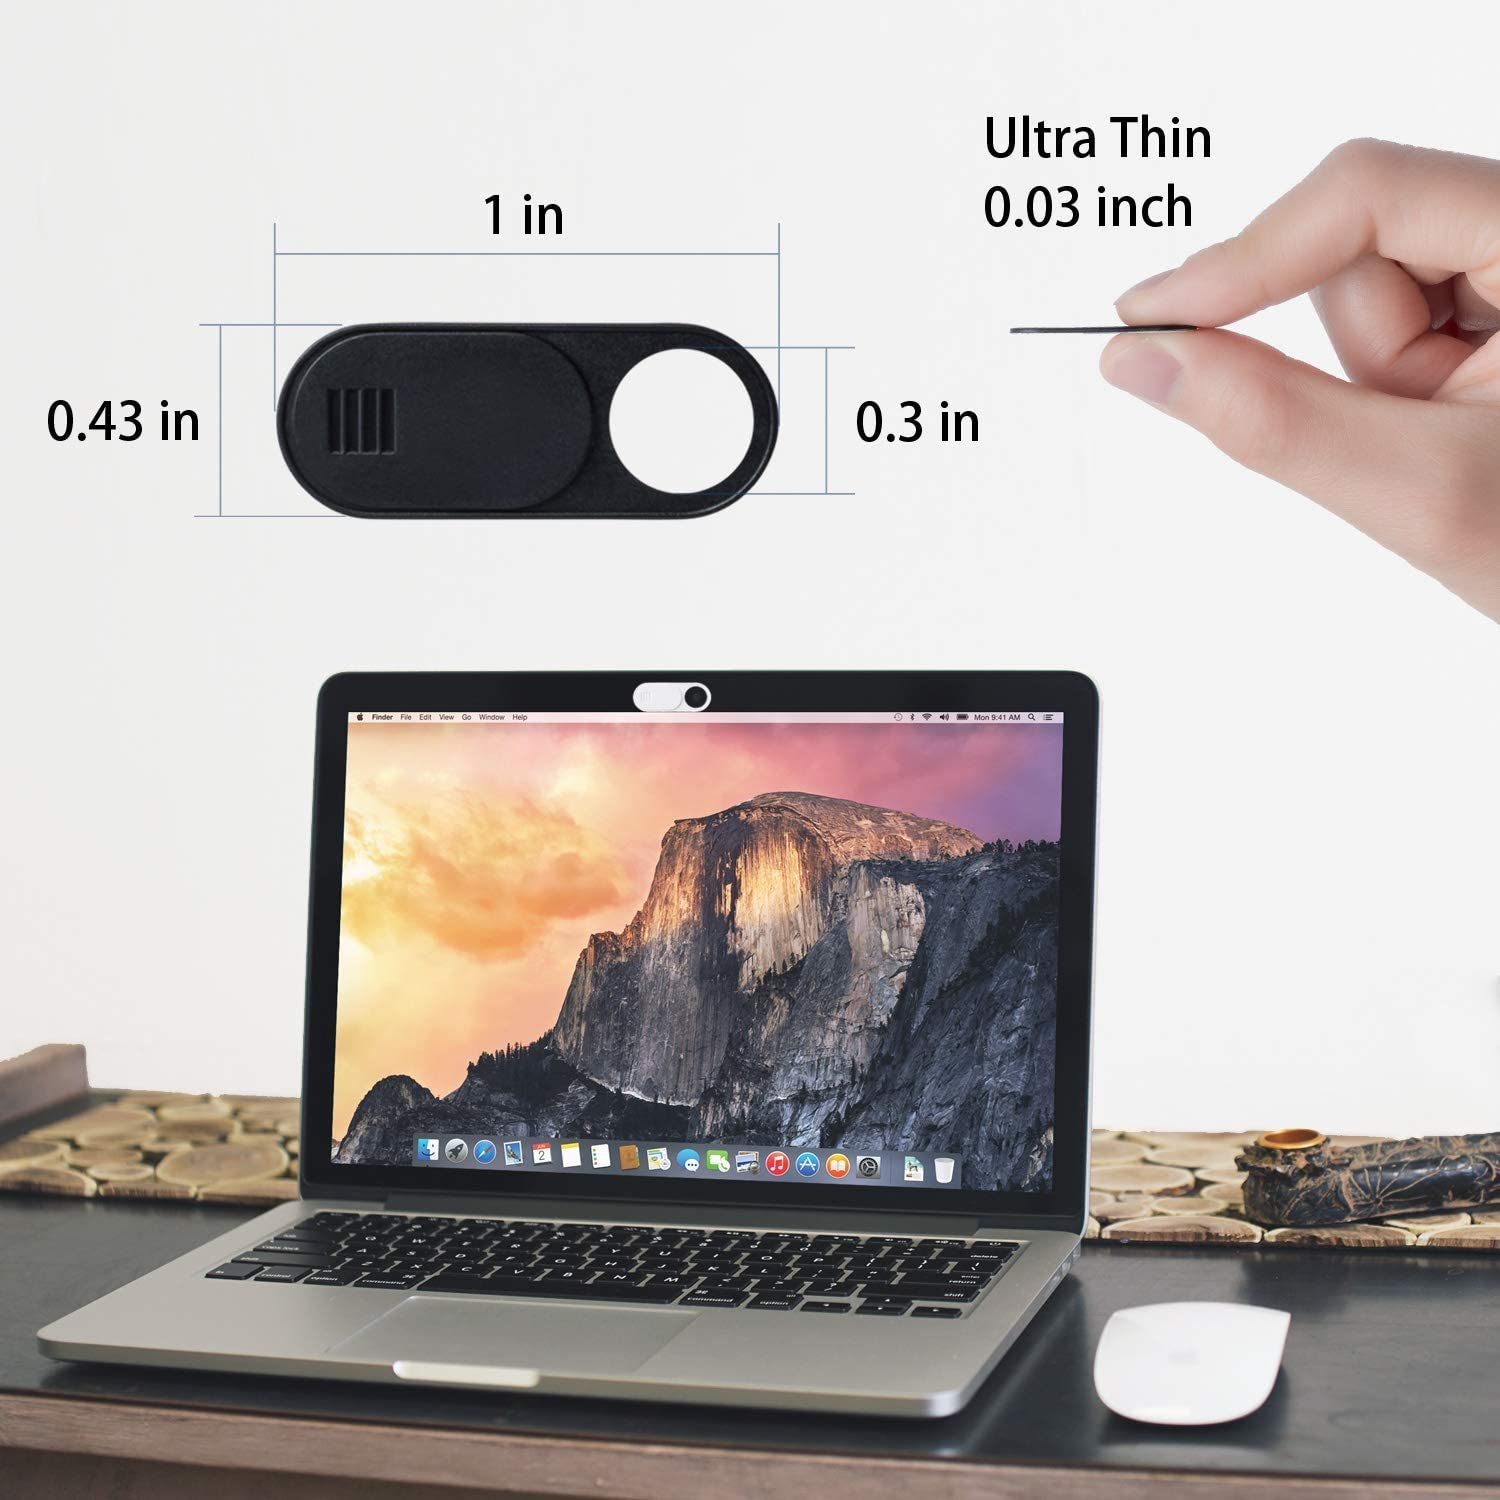 MacBook Black Vetoo Webcam Cover PC Pro Protect Your Privacy Security Digital Sliding Covers iPad iMac Computer 6-Pack Ultra Thin Design Web Camera Cover Slide Compatible Laptop